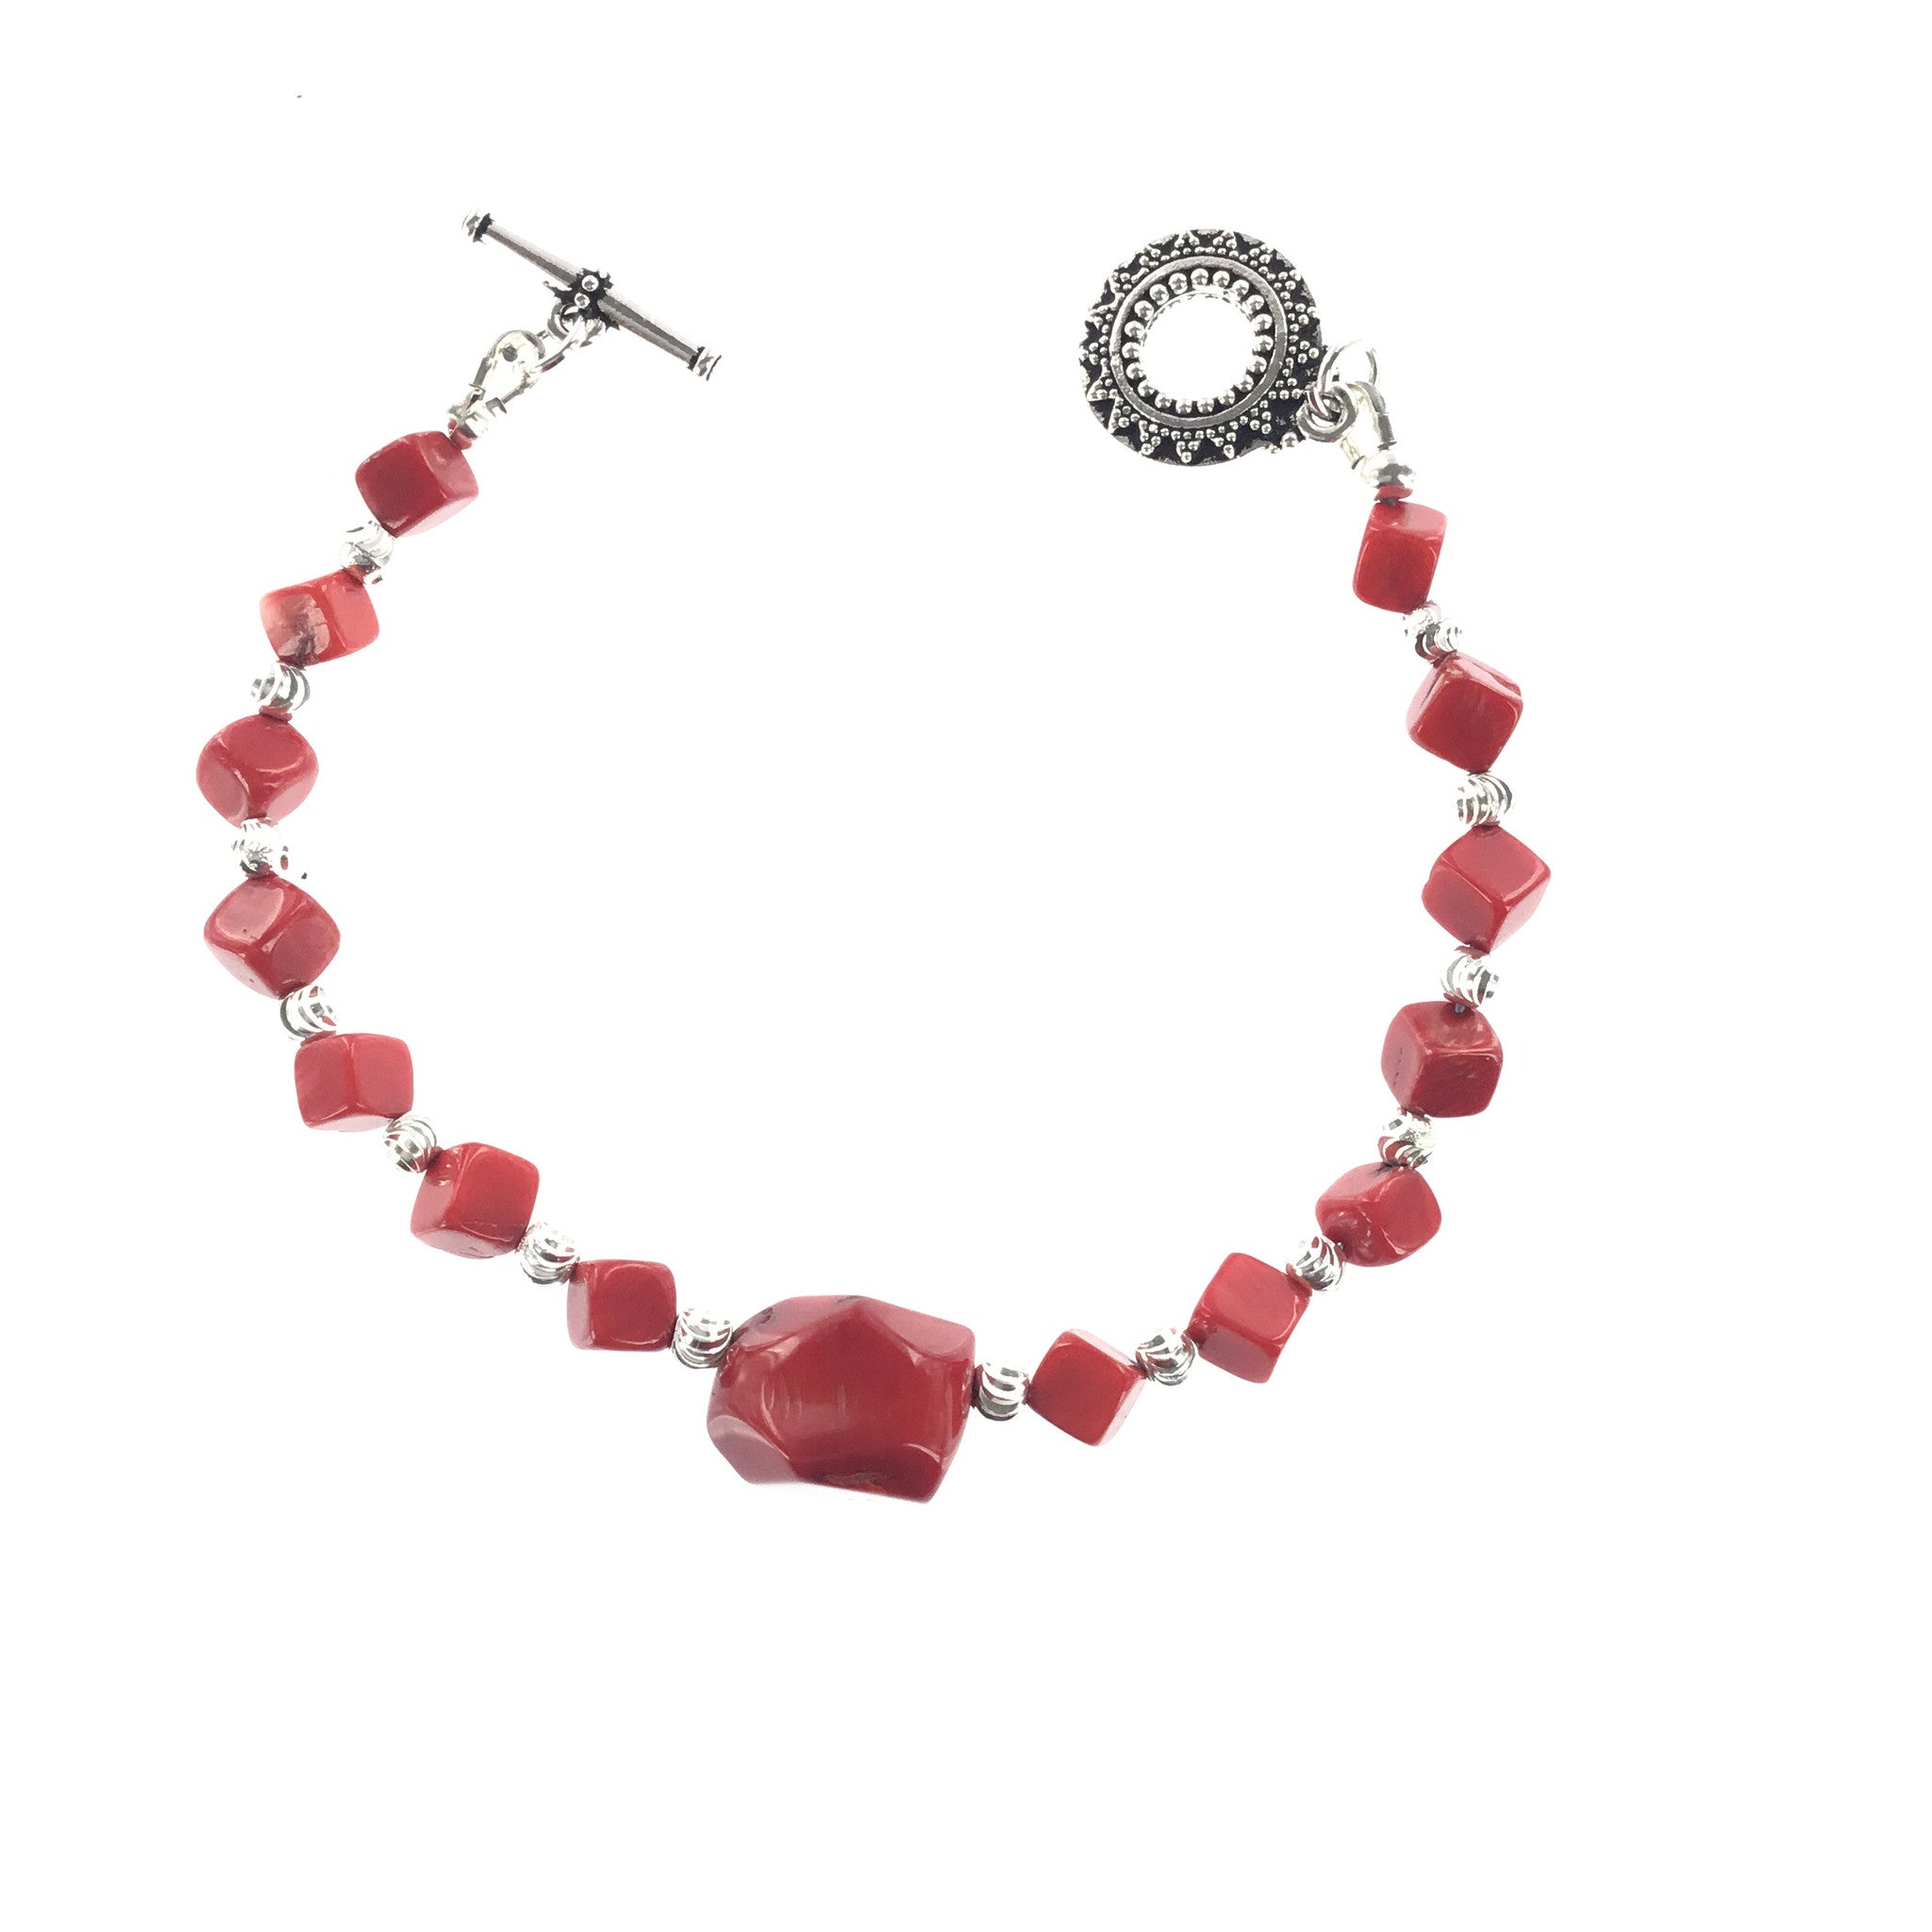 Red Coral and Silver Bracelet - Real Chic Boutique  - 1